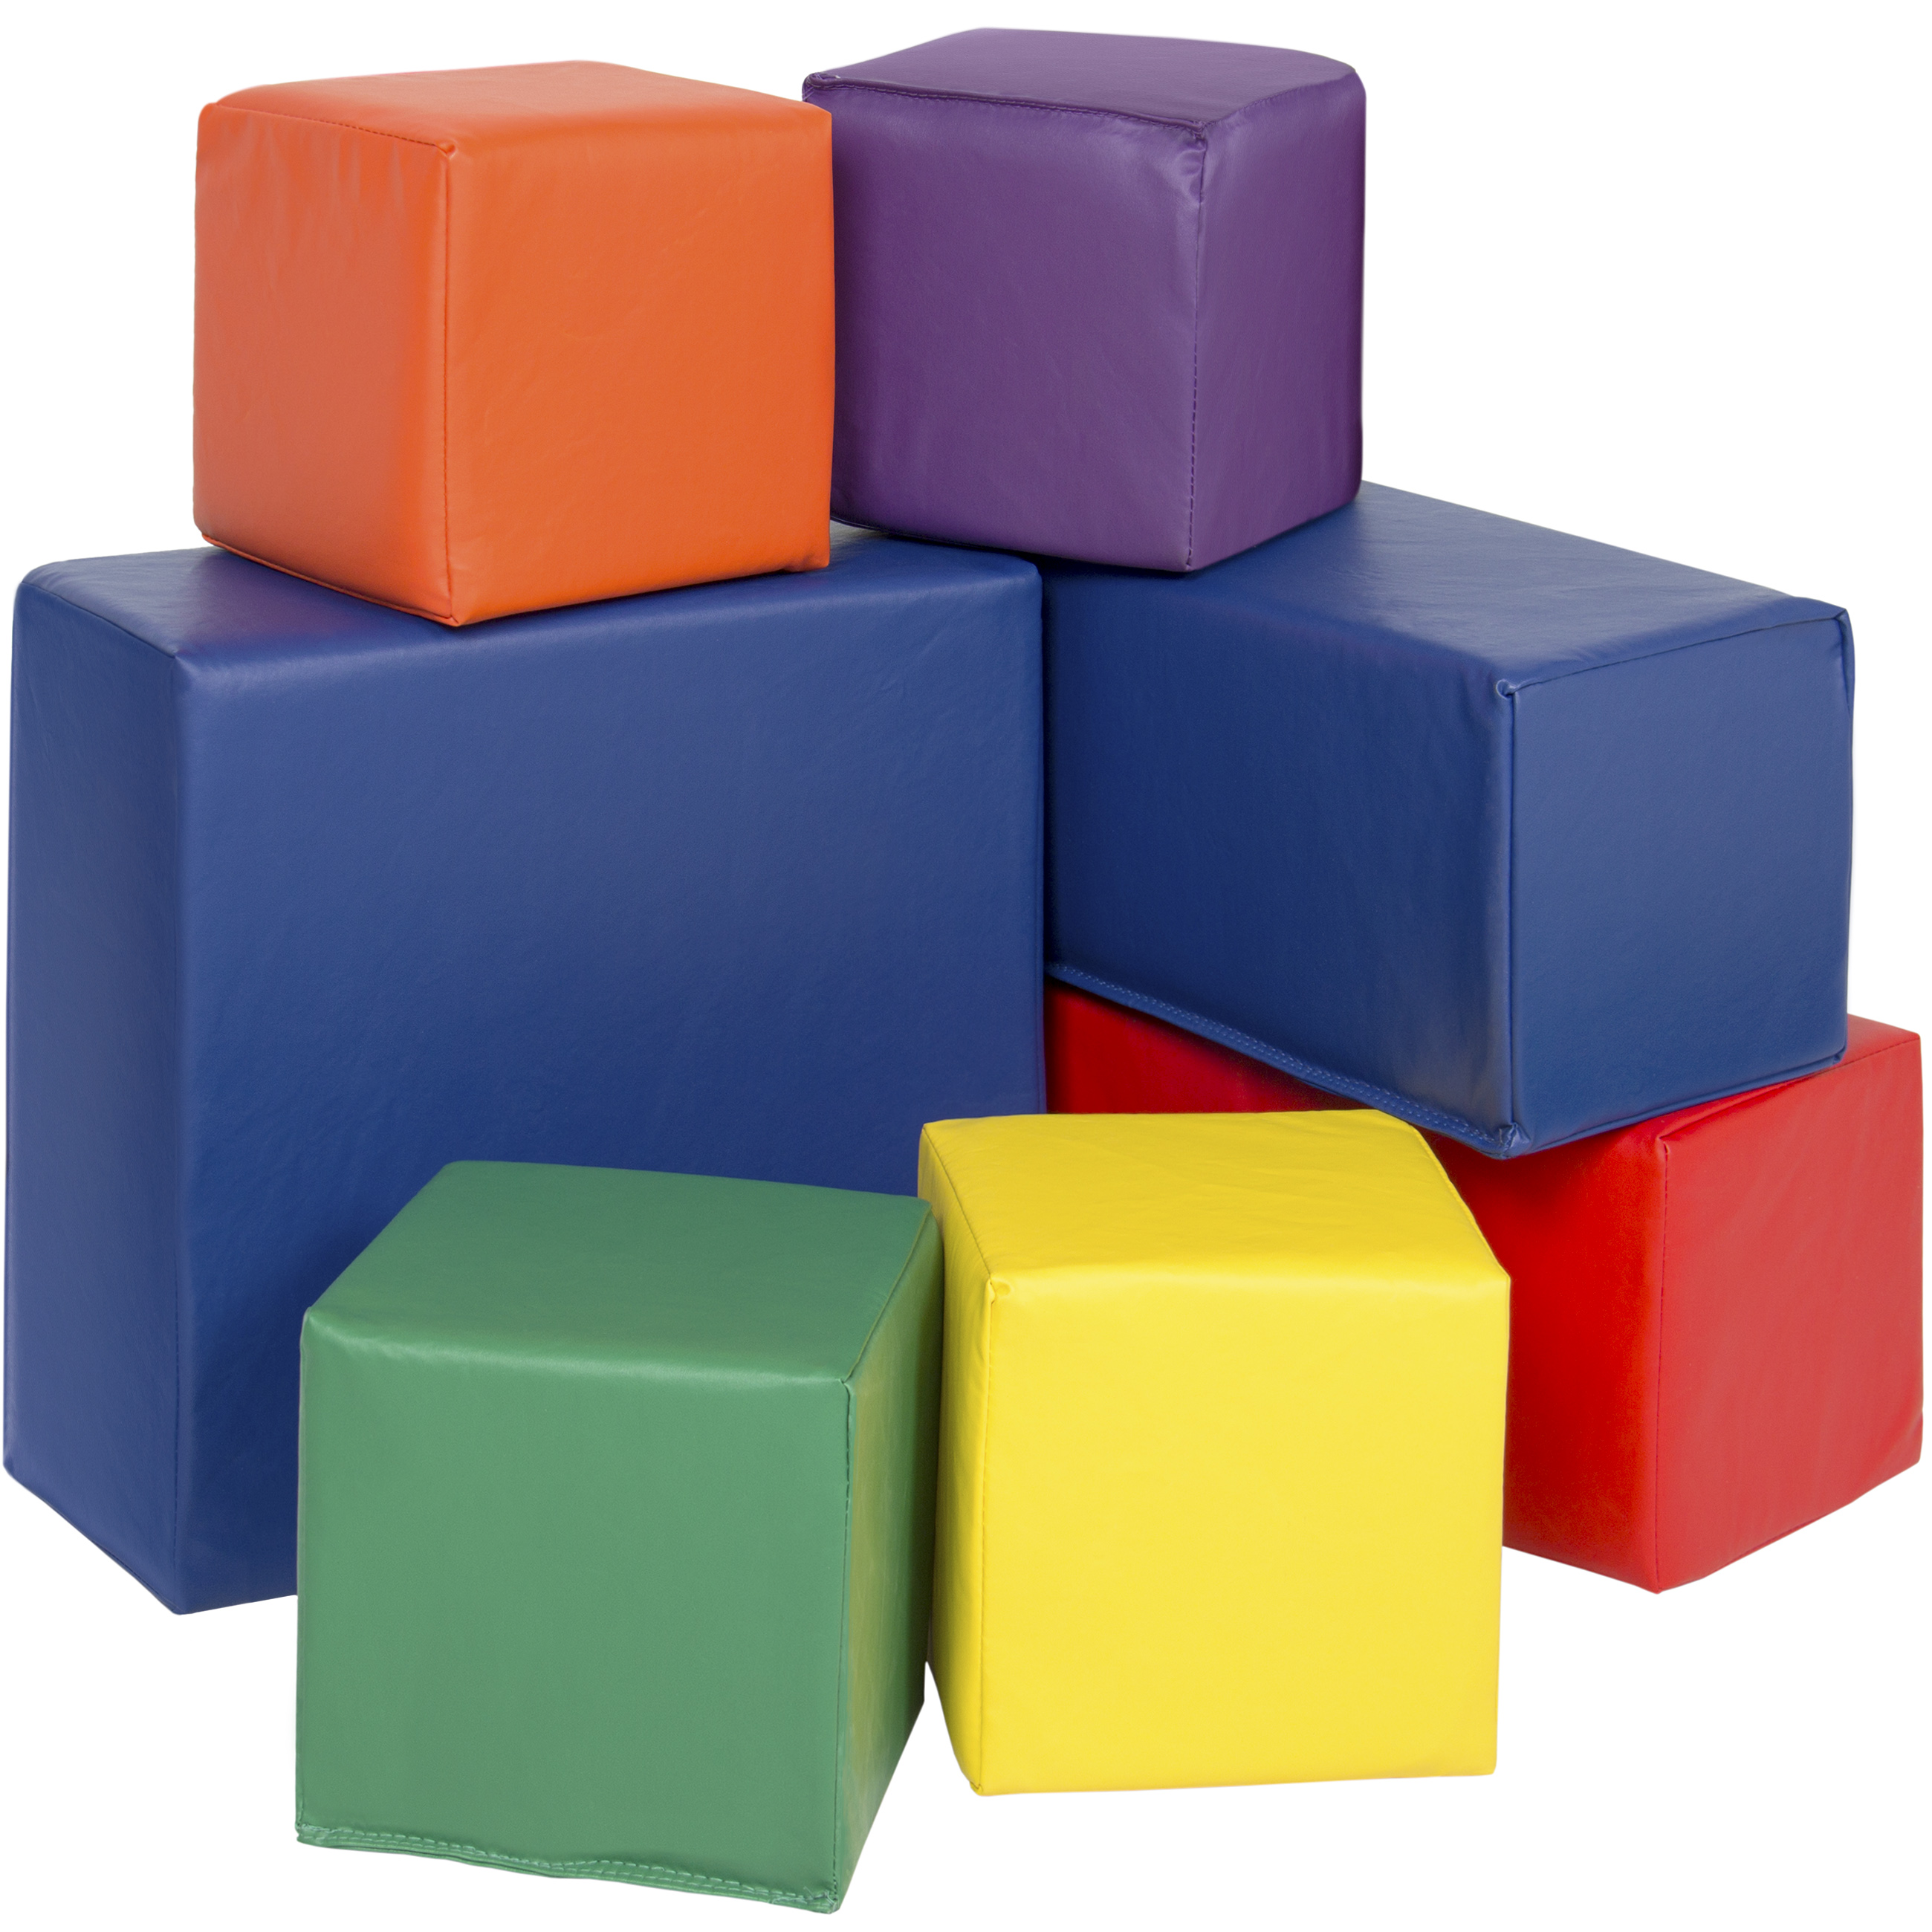 Best Choice Products 7-Piece Soft Big Foam Blocks Play Set for Sensory Development and... by Best Choice Products